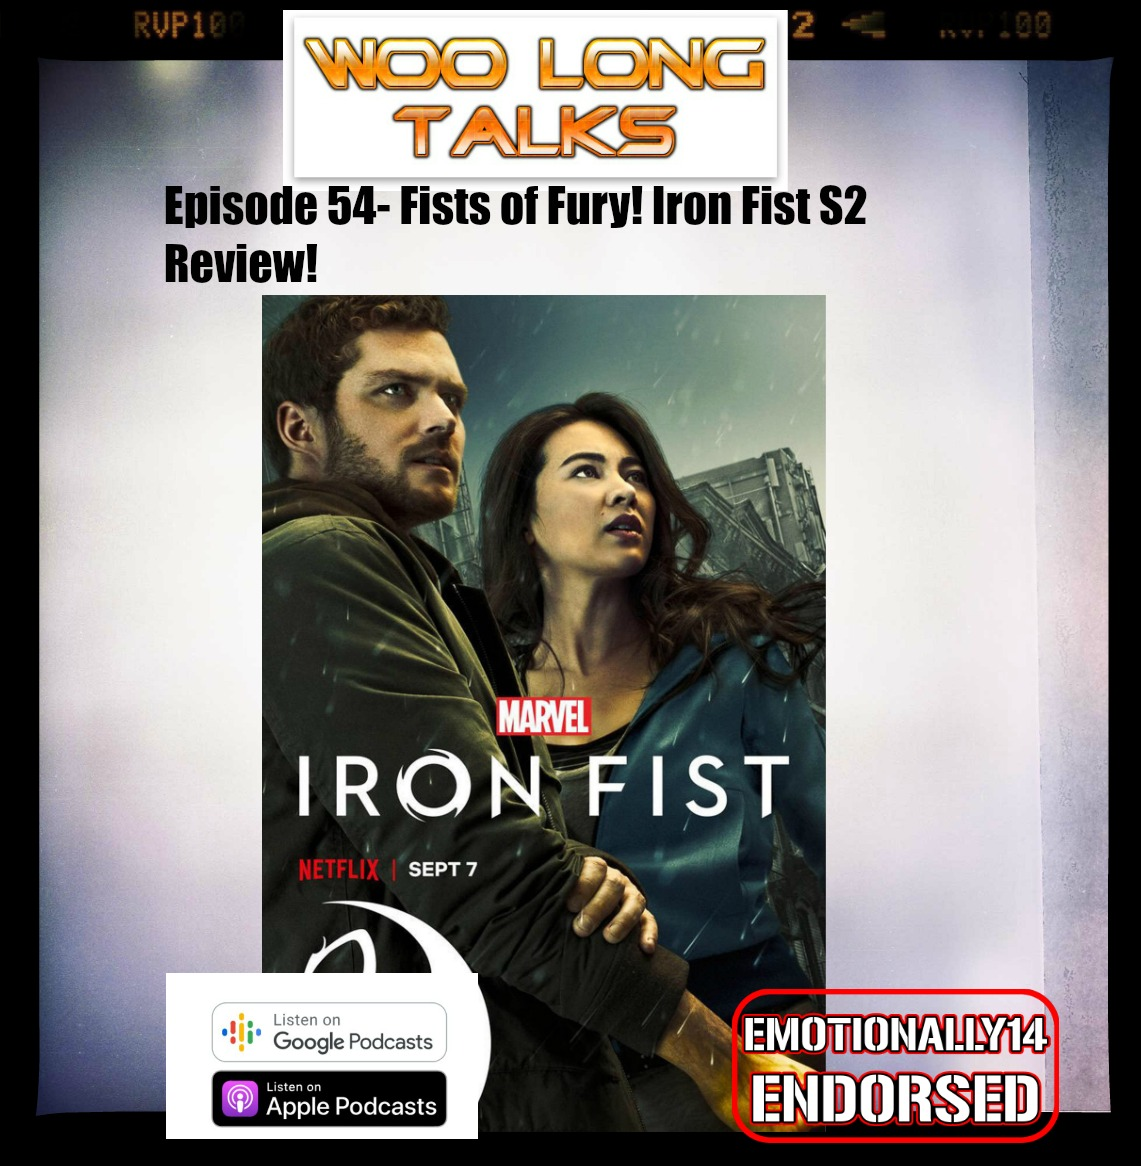 Episode 54 - Fists of Fury! Iron Fist Season 2 review